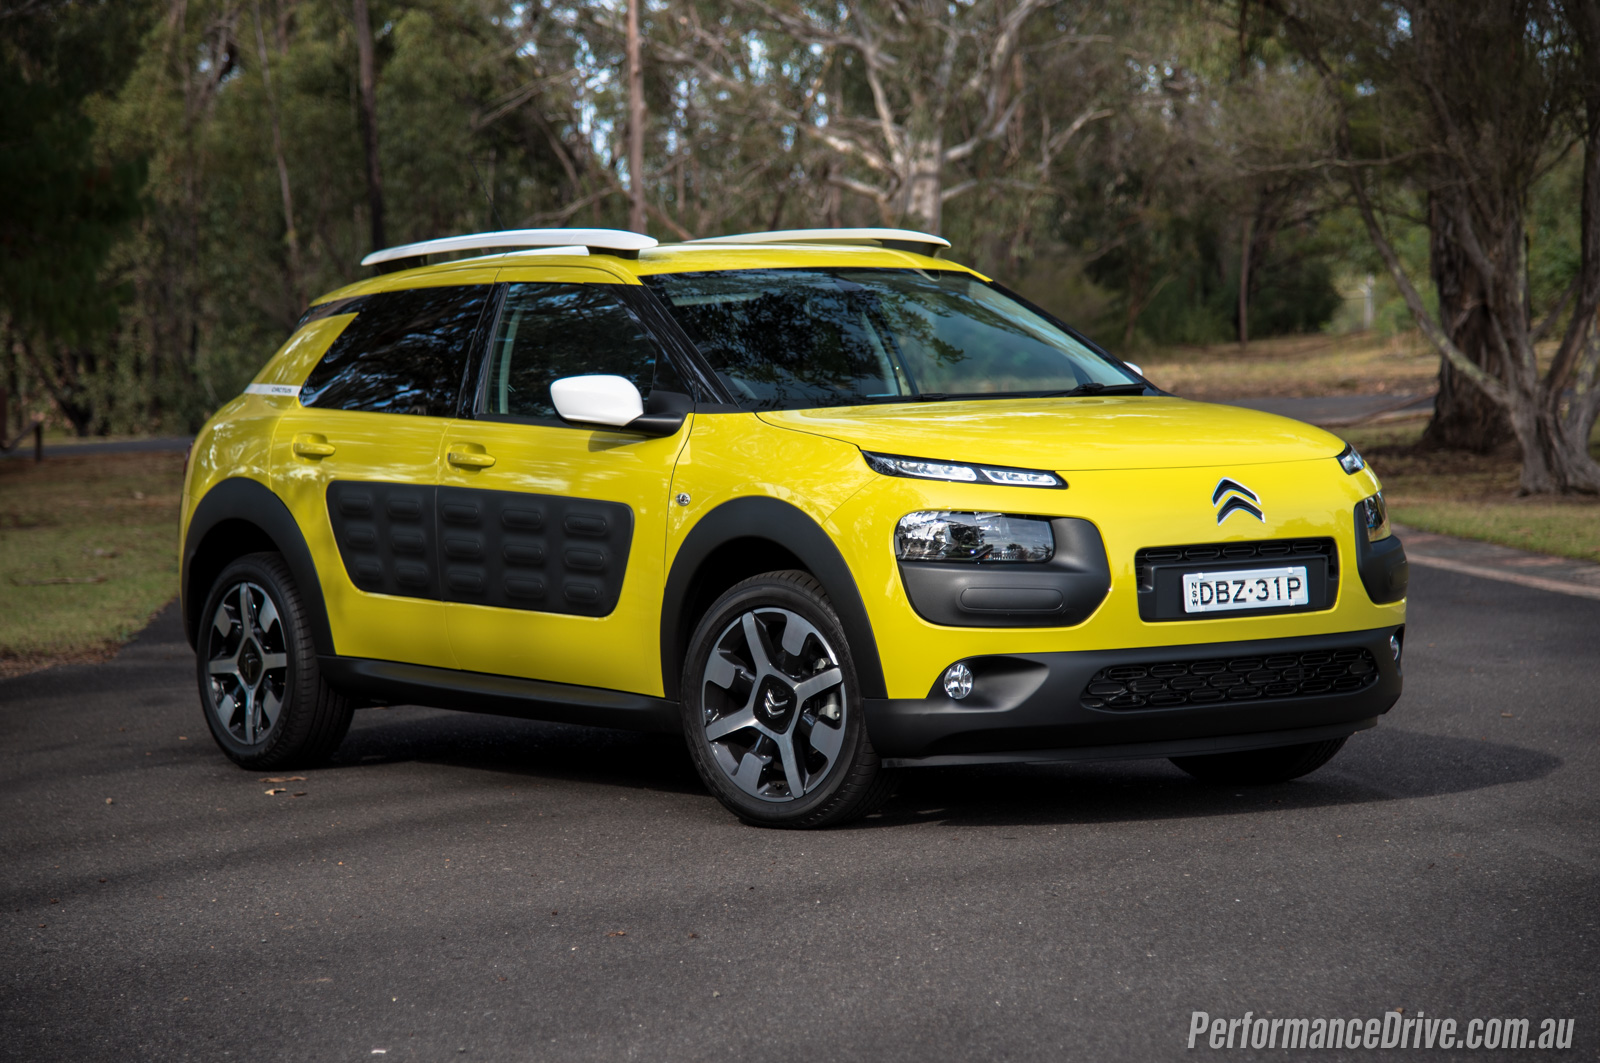 Juke Nissan 2016 >> 2016 Citroen C4 Cactus diesel review (video) | PerformanceDrive